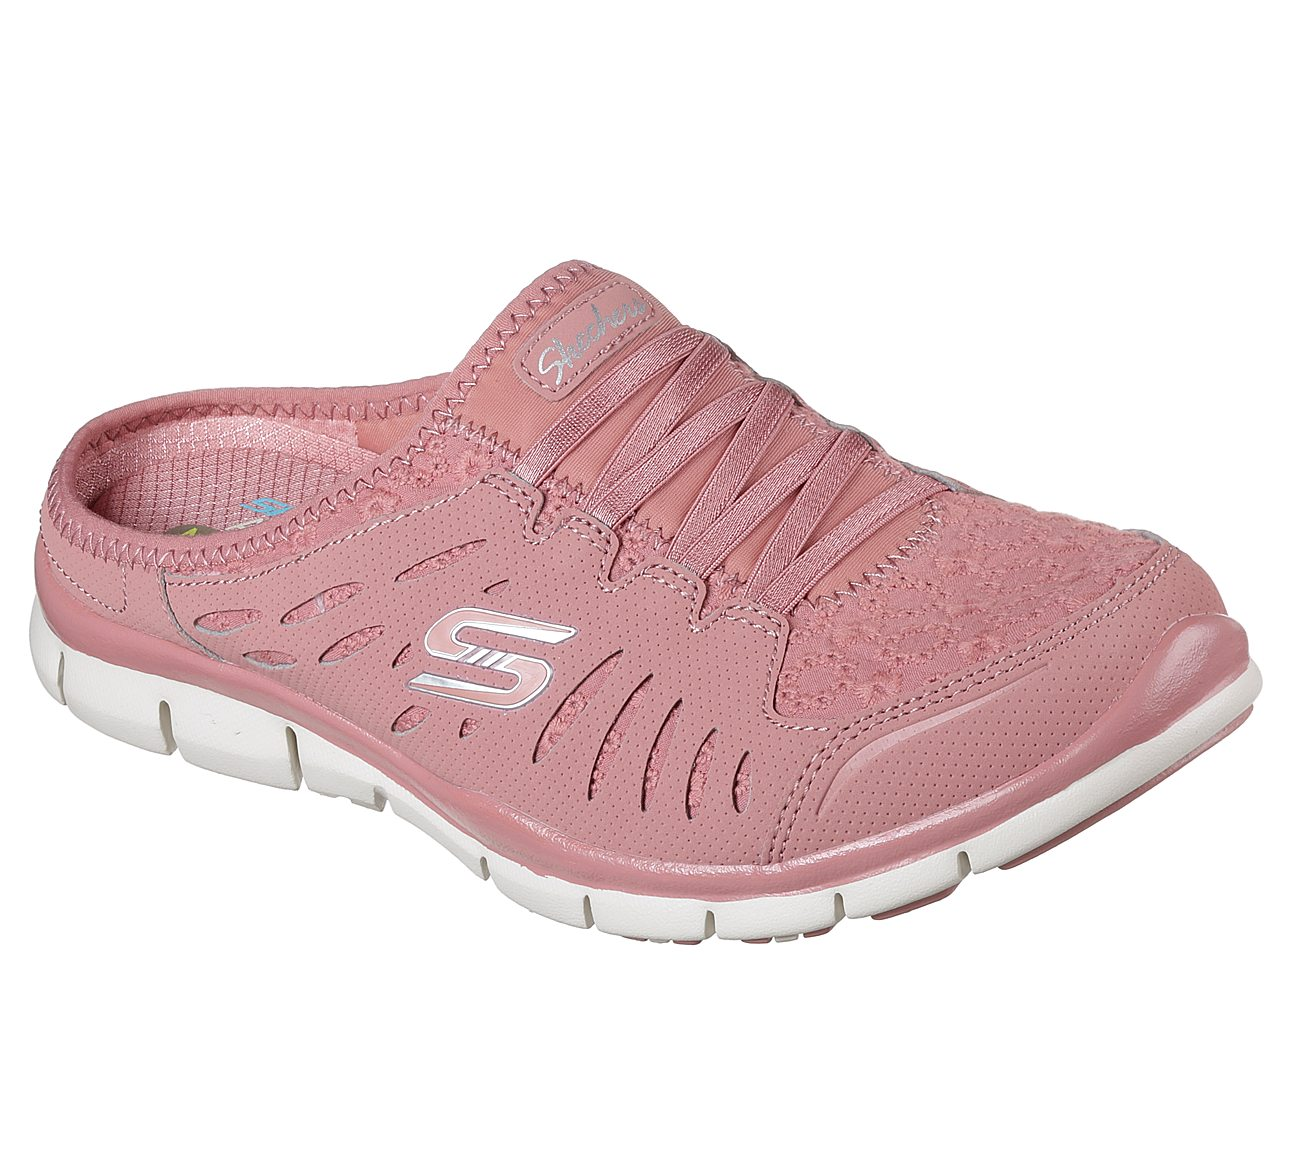 08b1bb08a2f Buy SKECHERS Gratis - Delicate Allure Sport Active Shoes only  65.00